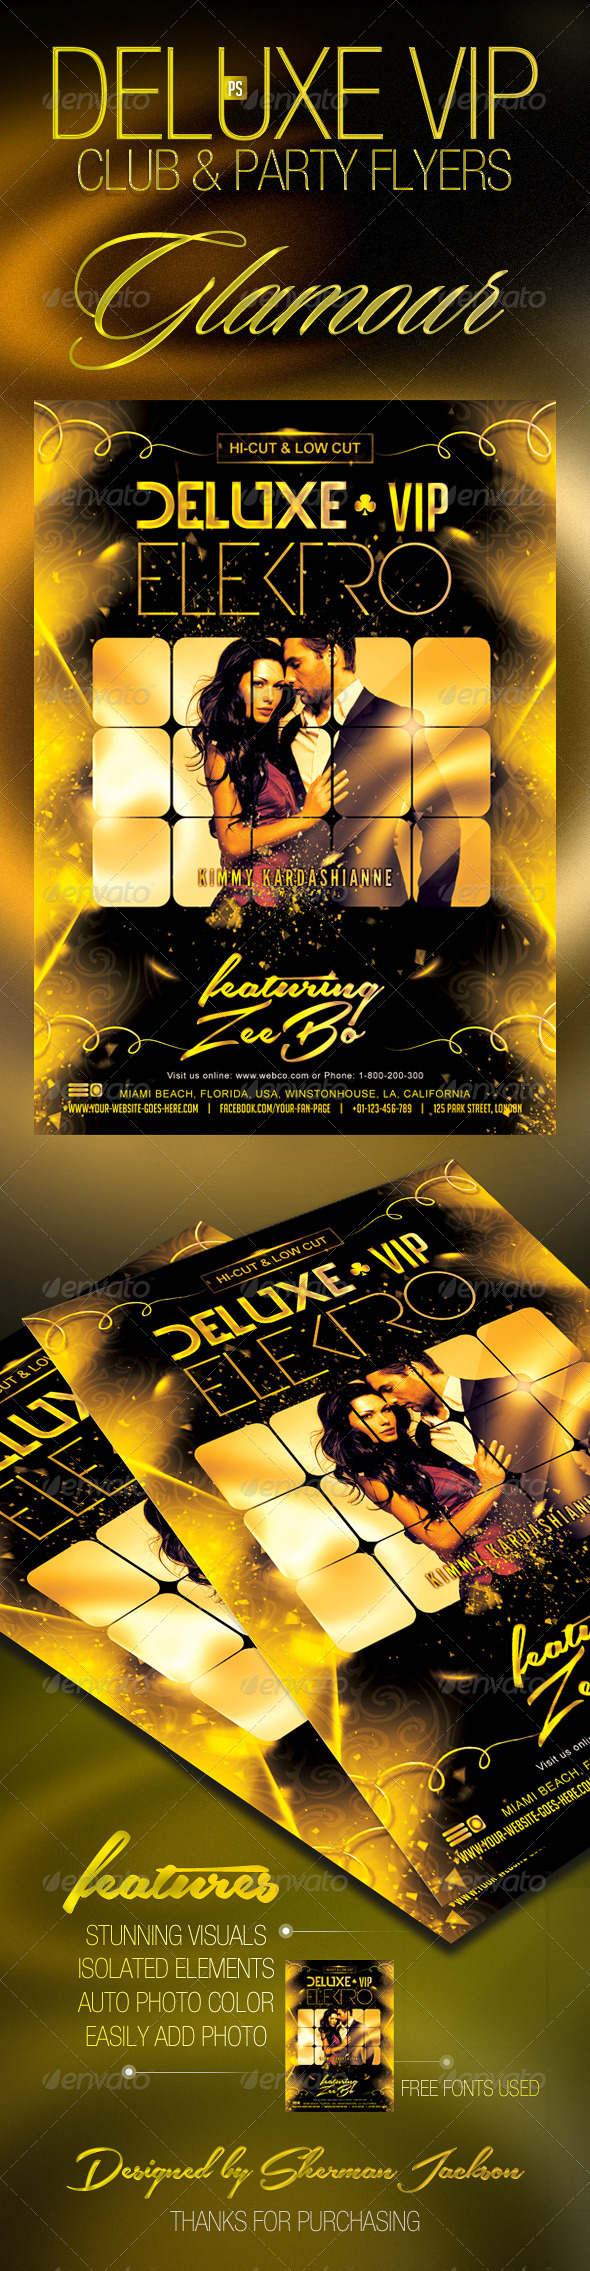 GraphicRiver Deluxe VIP Club Party Flyer 7671407